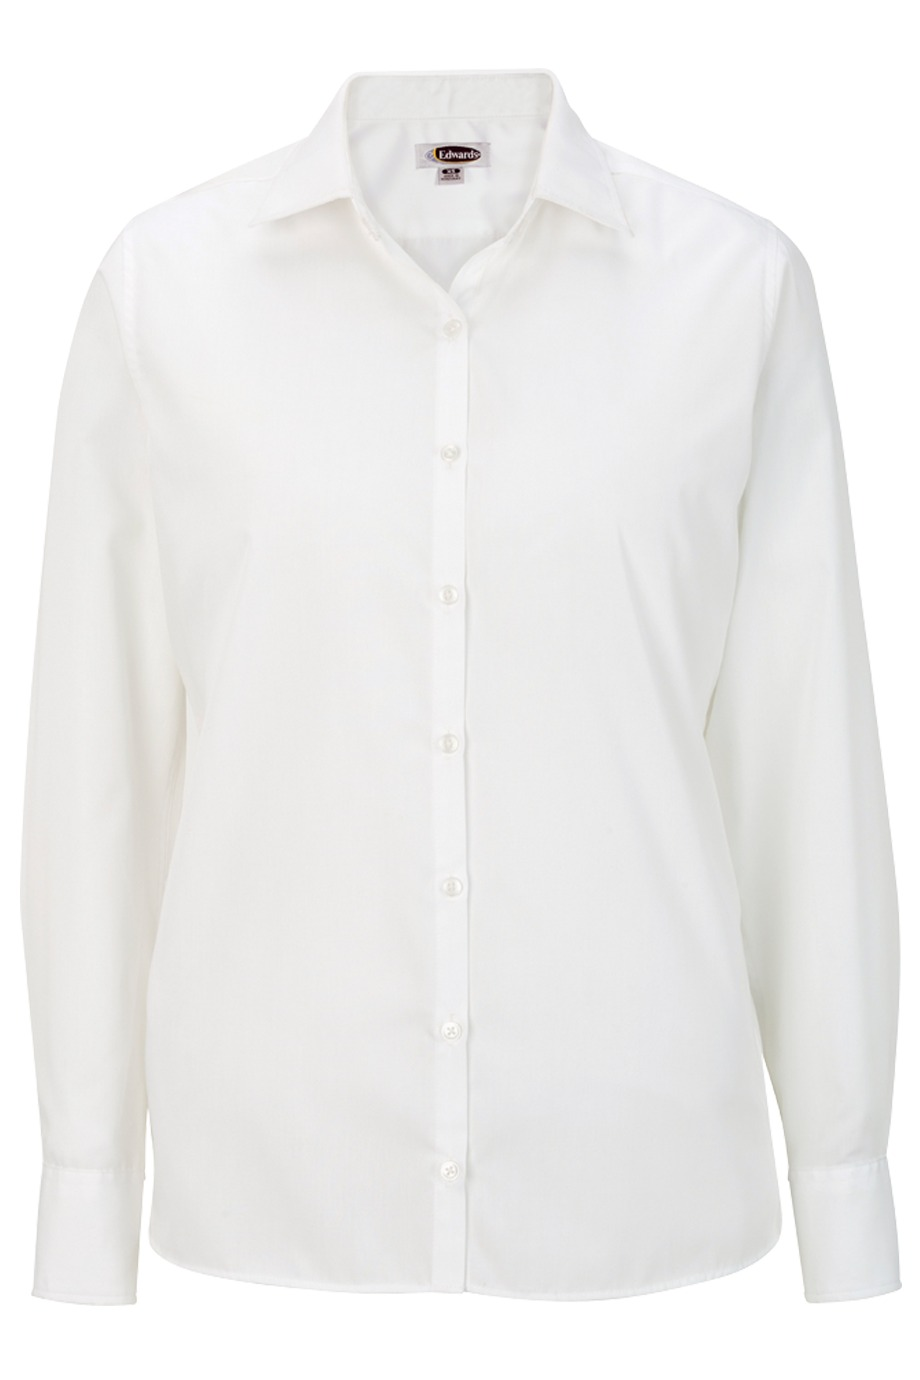 Edwards Garment 5273 - Ladies Poplin LongSleeve Shirt